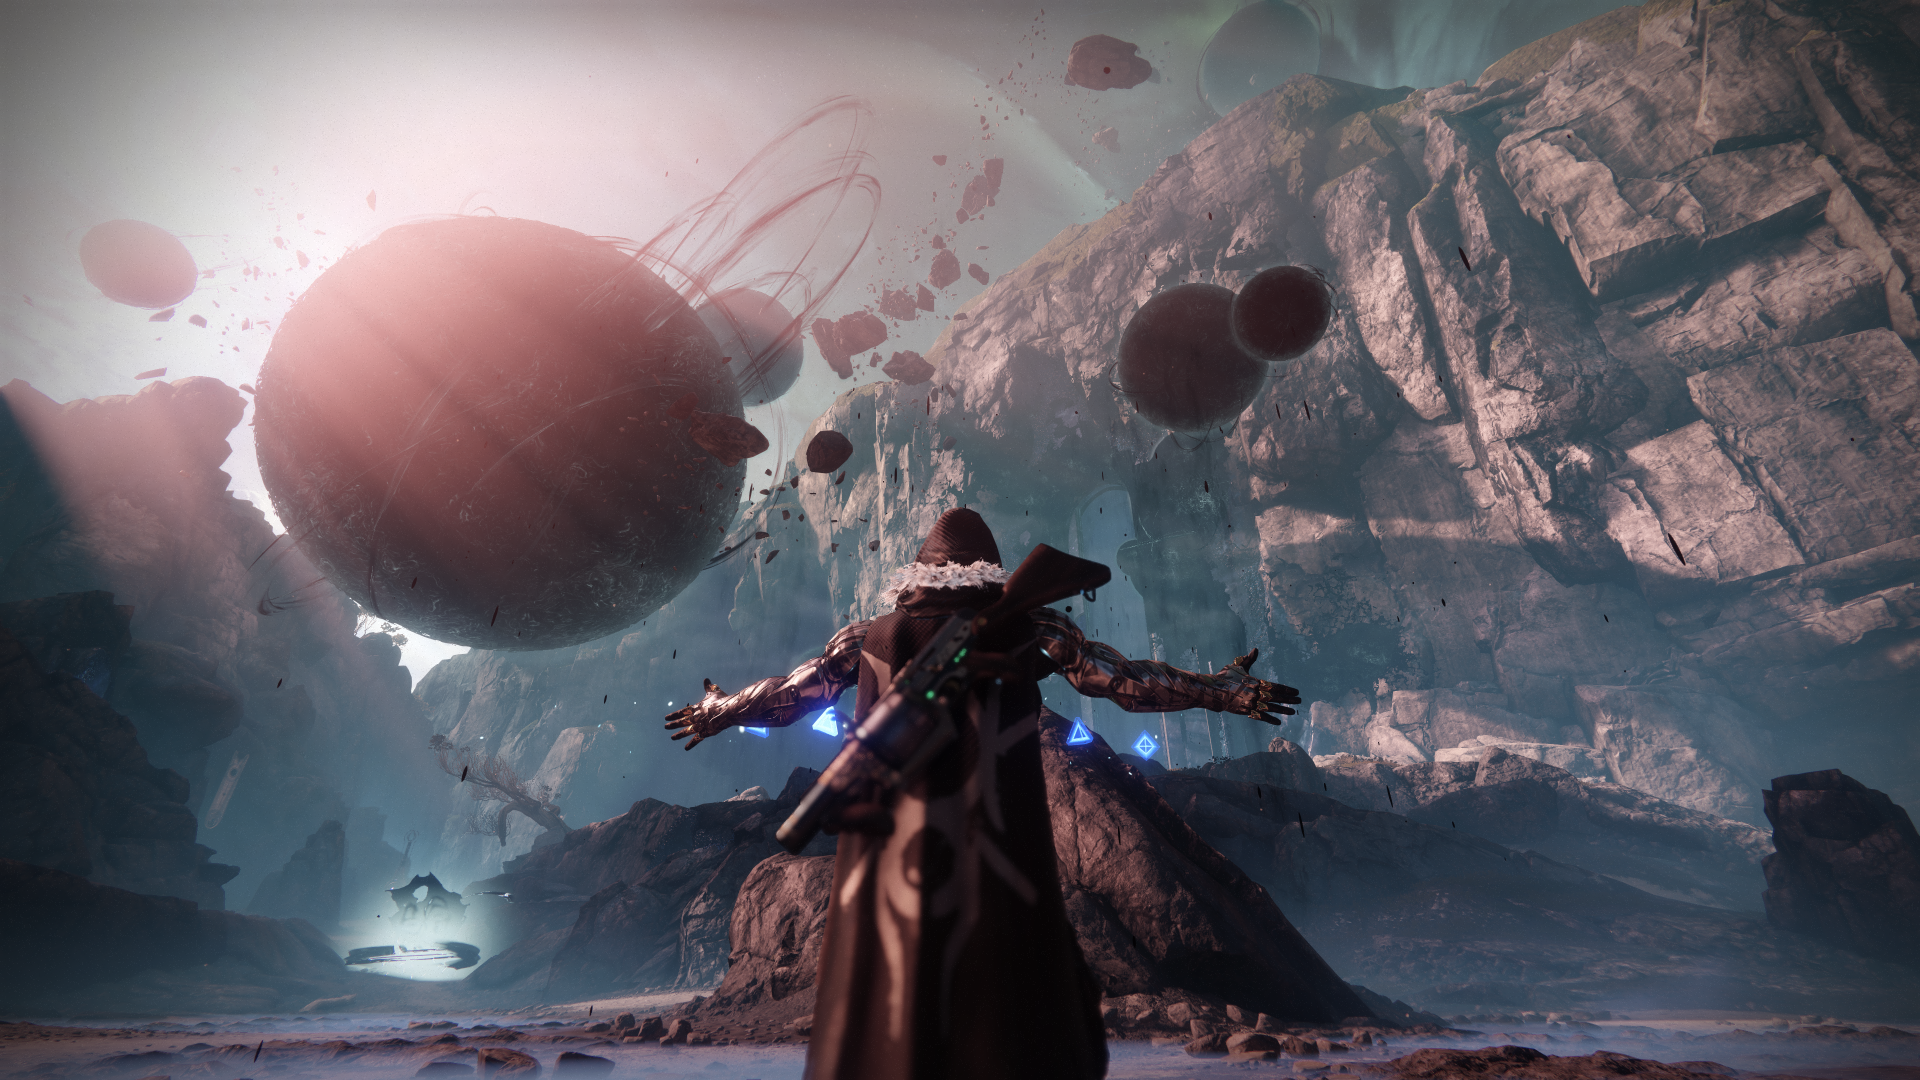 Image Take In Destiny 2 Hd Wallpaper Background Image